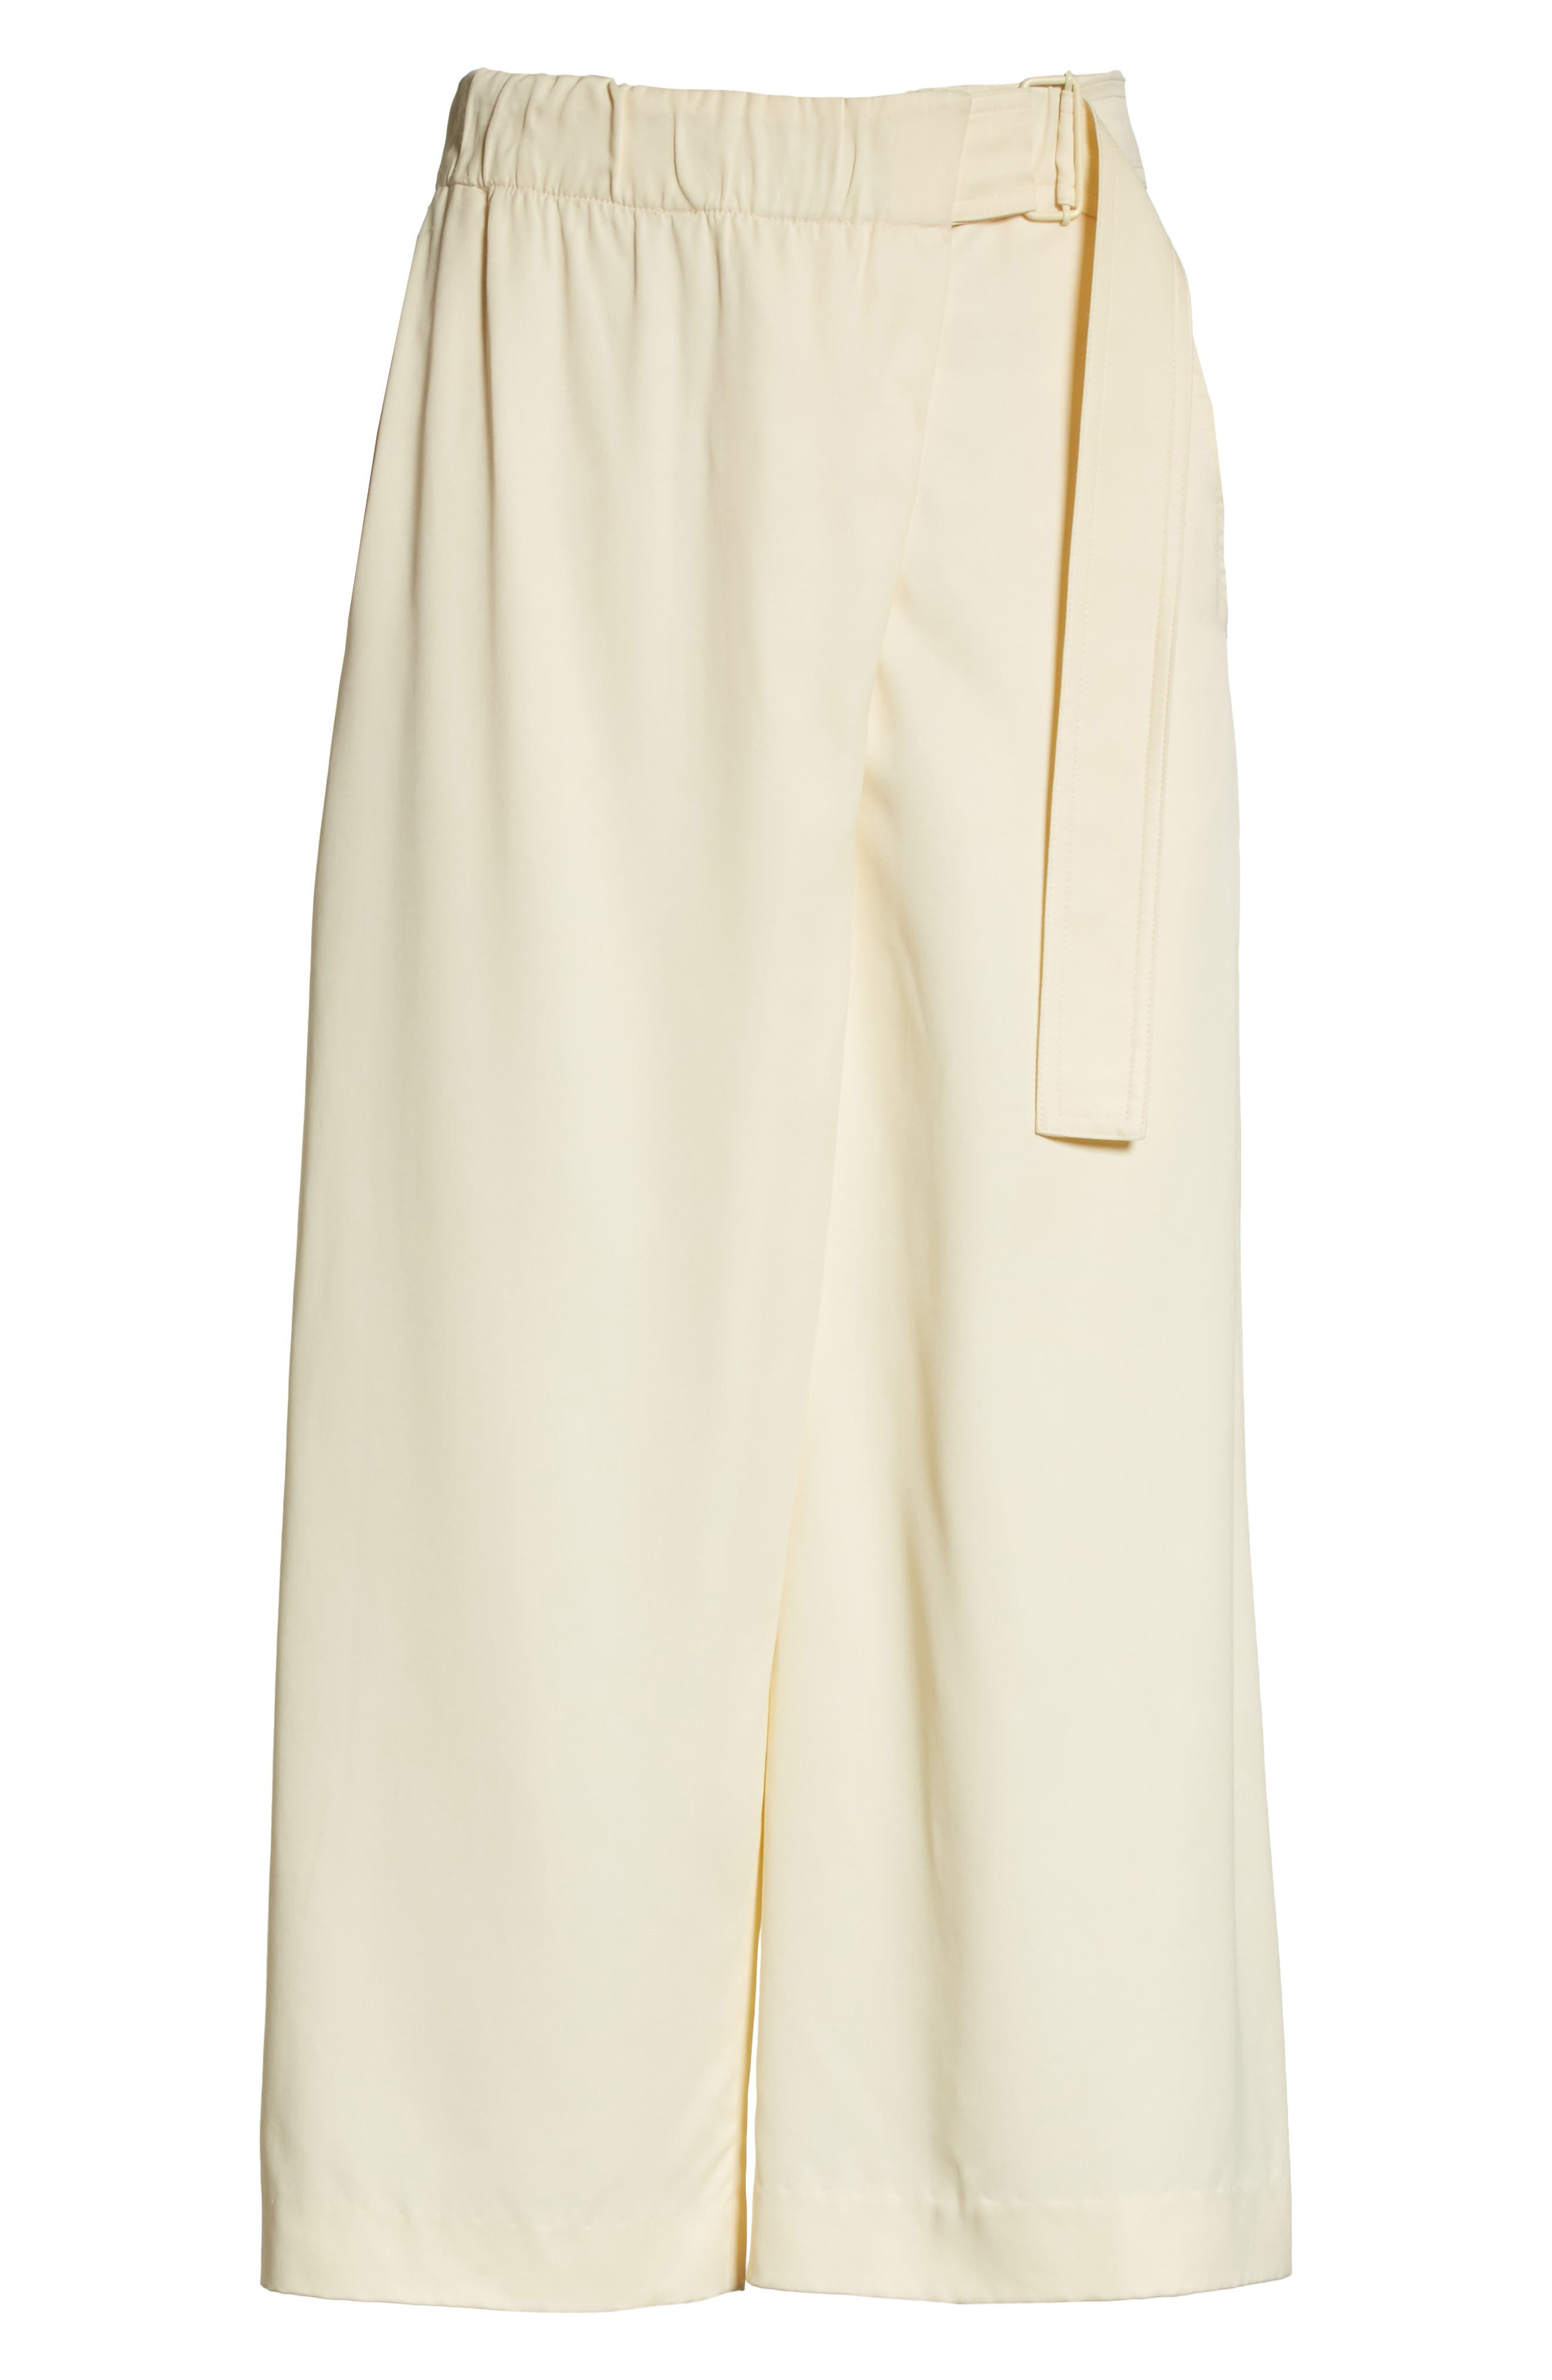 Belted Crossover Culottes,                             Alternate thumbnail 6, color,                             Buttercream